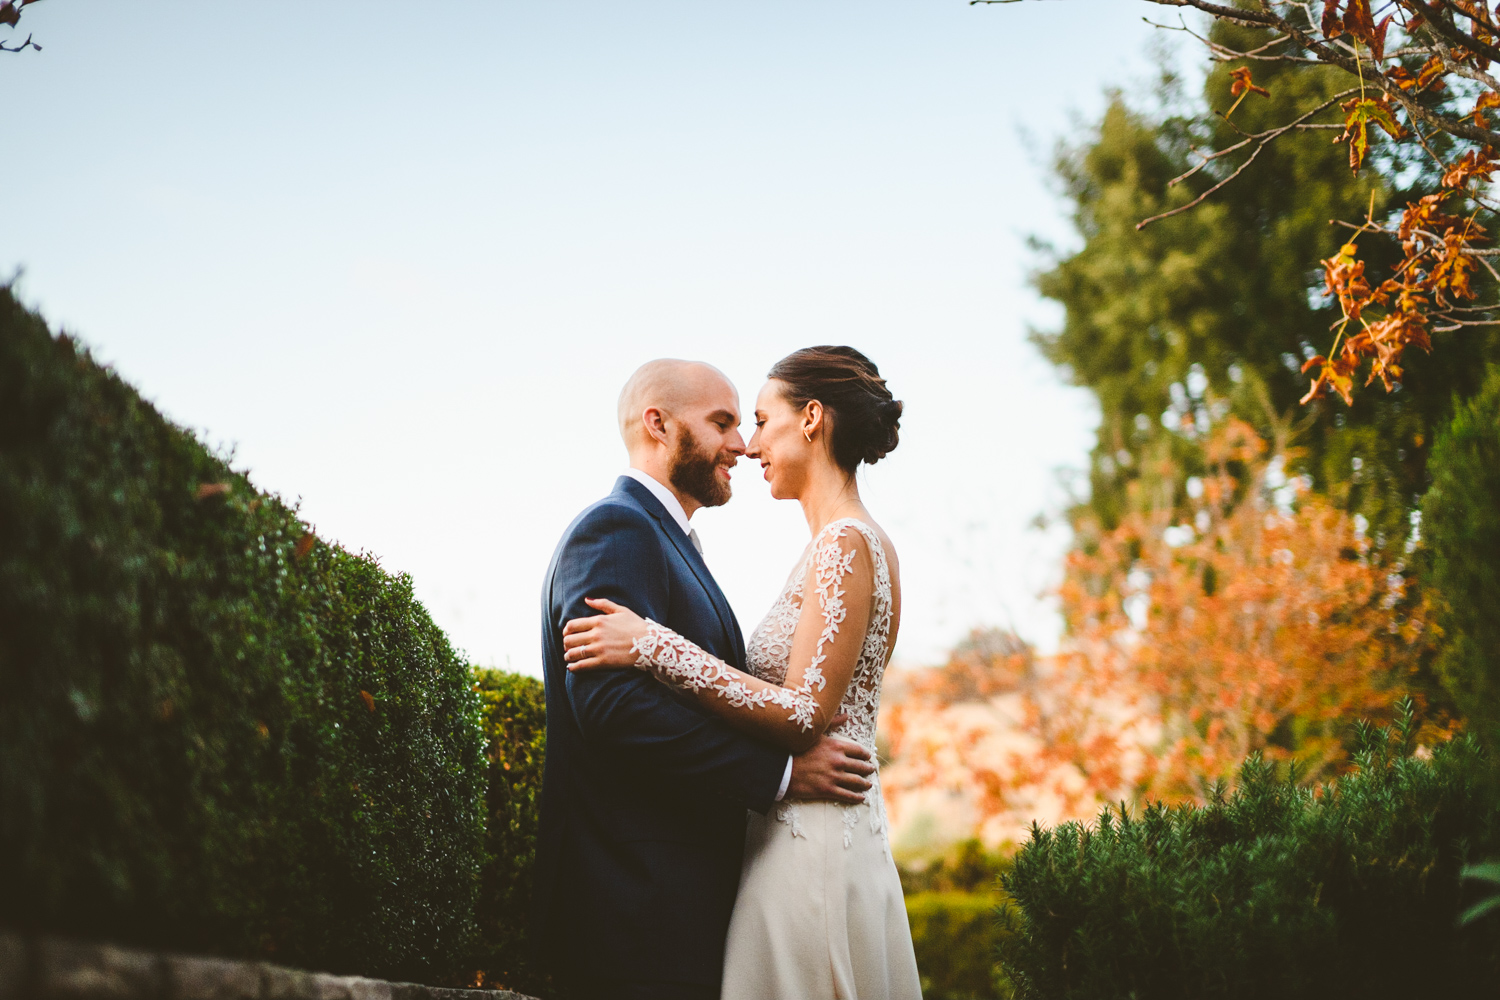 029 - bride and groom embracing for a portrait.jpg